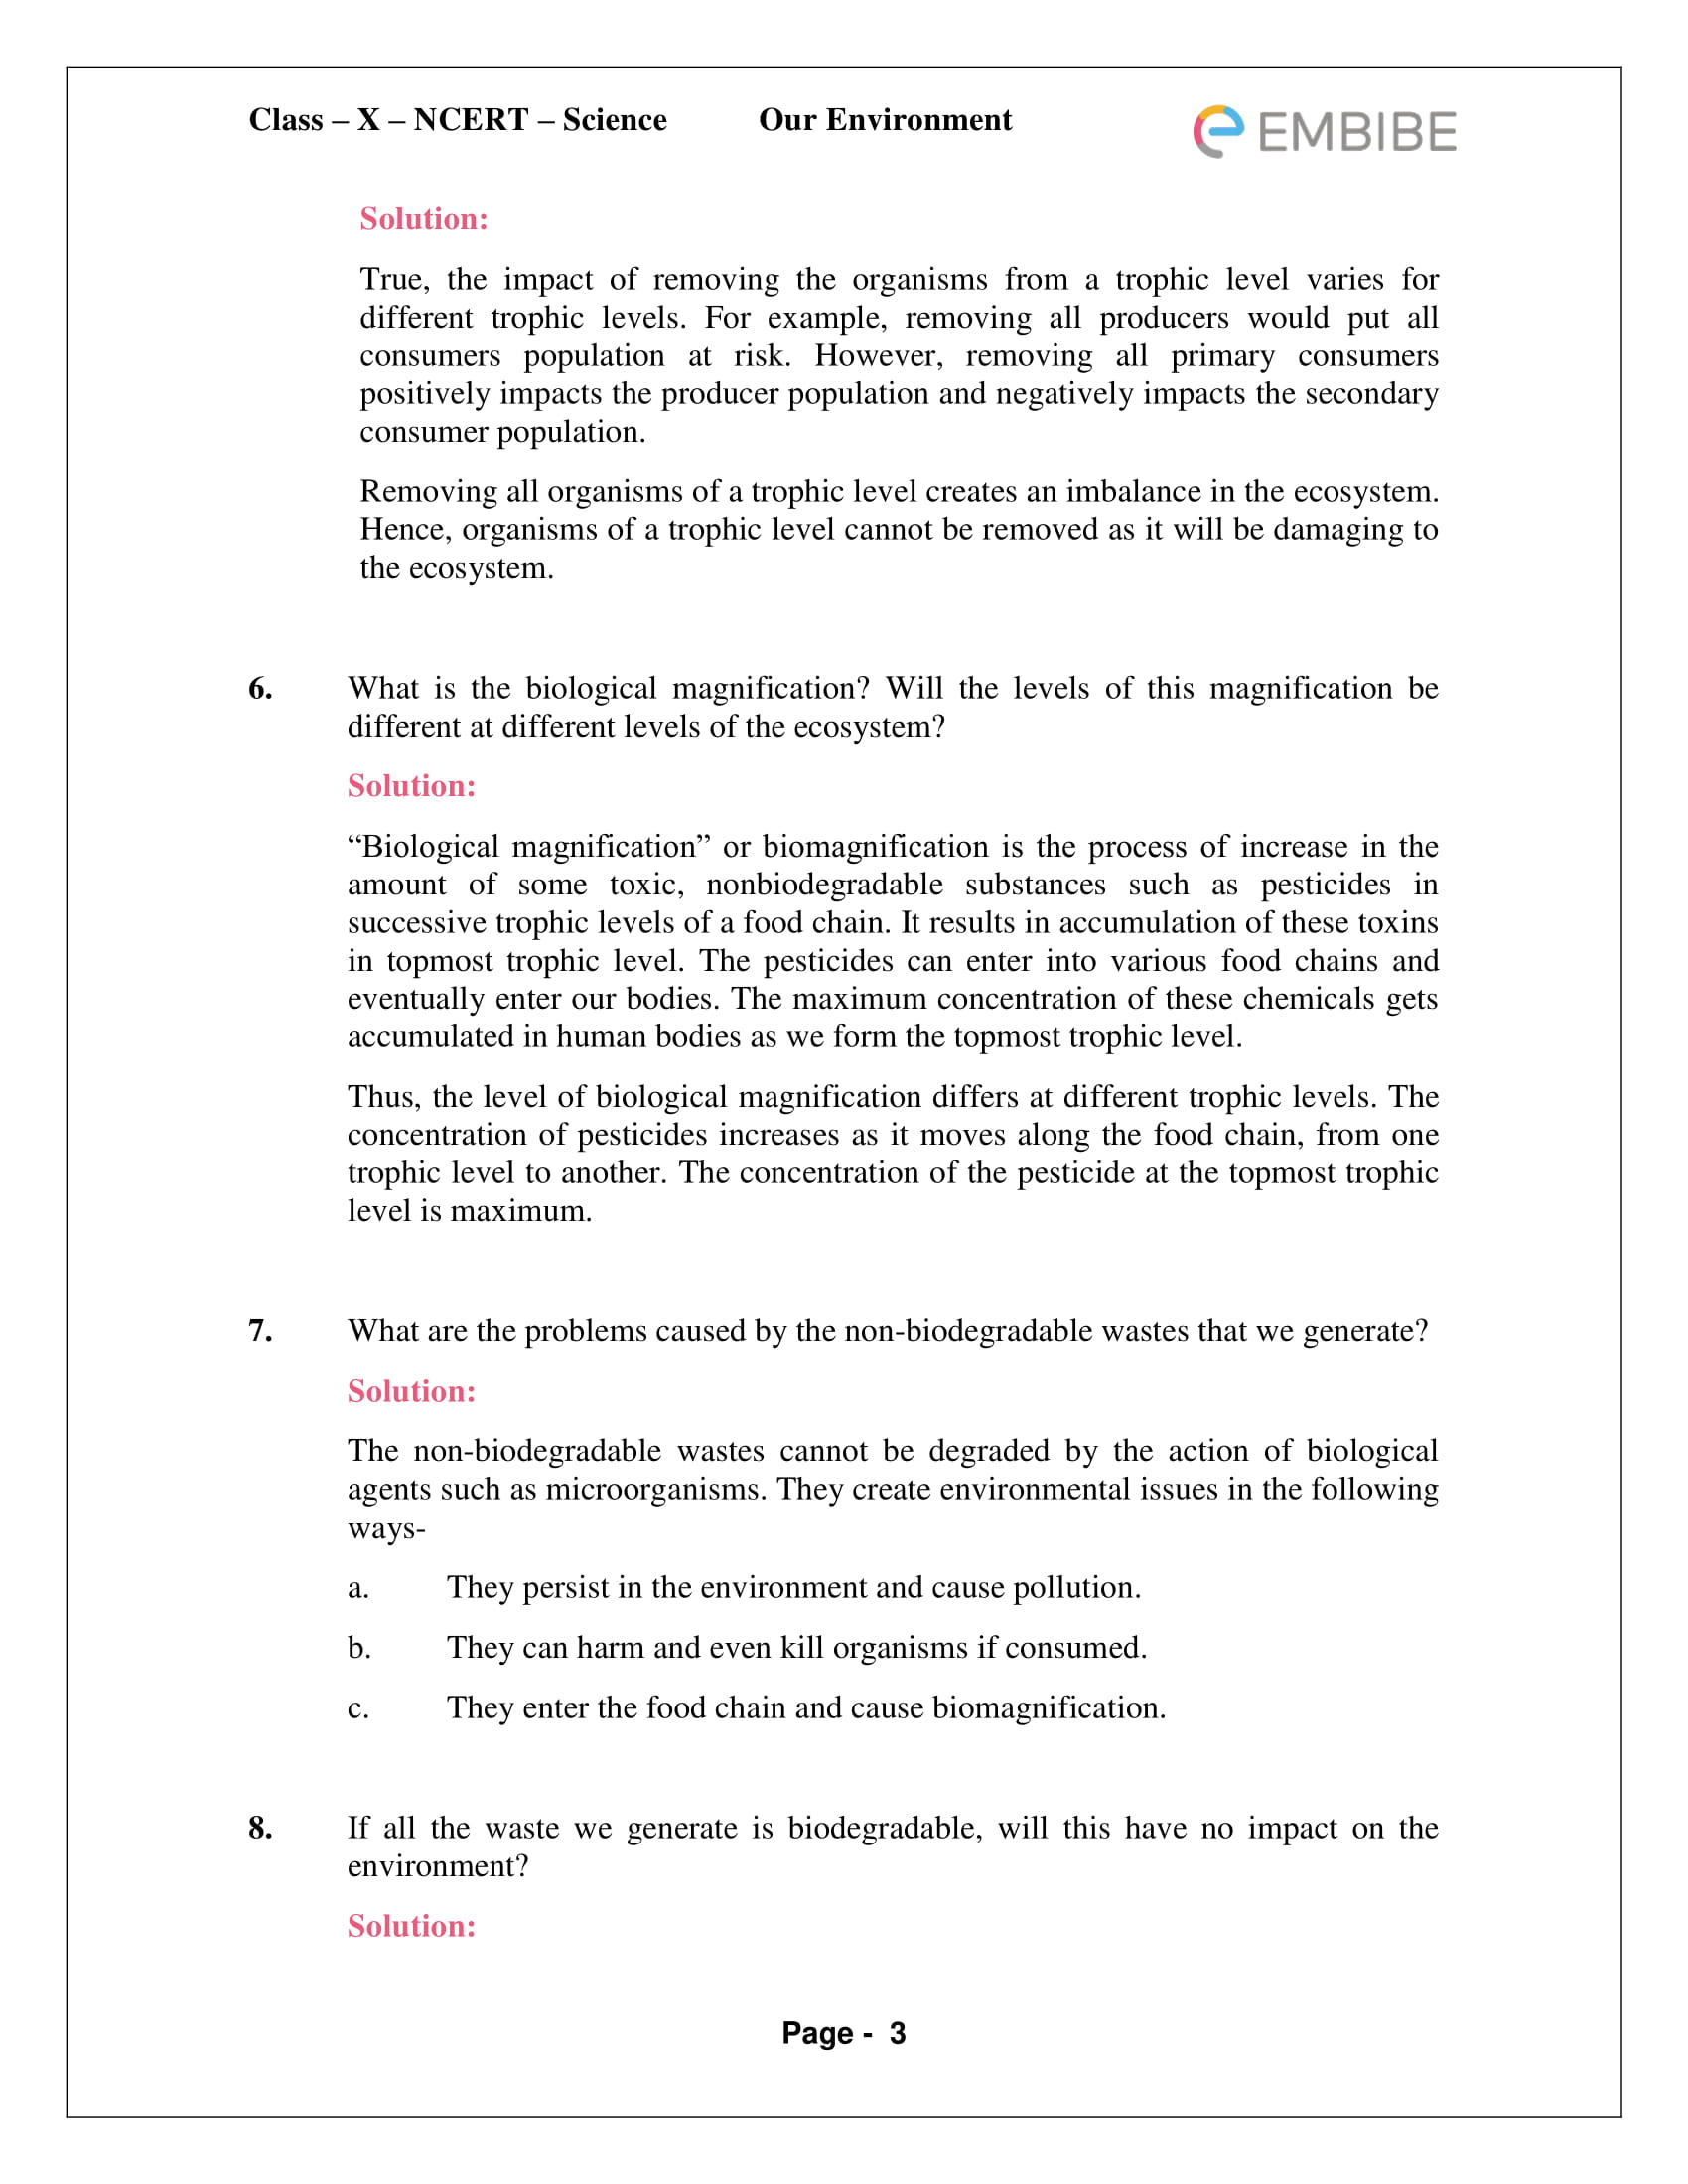 CBSE NCERT Solutions For Class 10 Science Chapter 15 - Our Environment